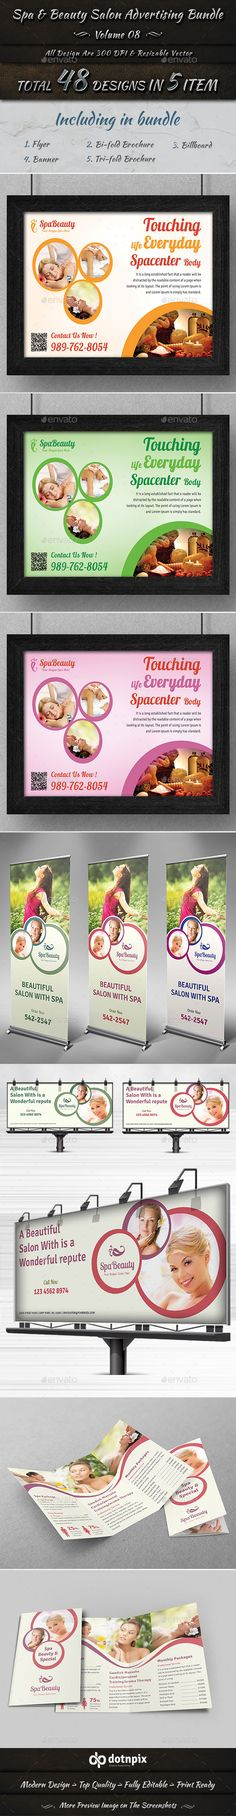 Spa & Beauty Salon Advertising Bundle | Volume 8